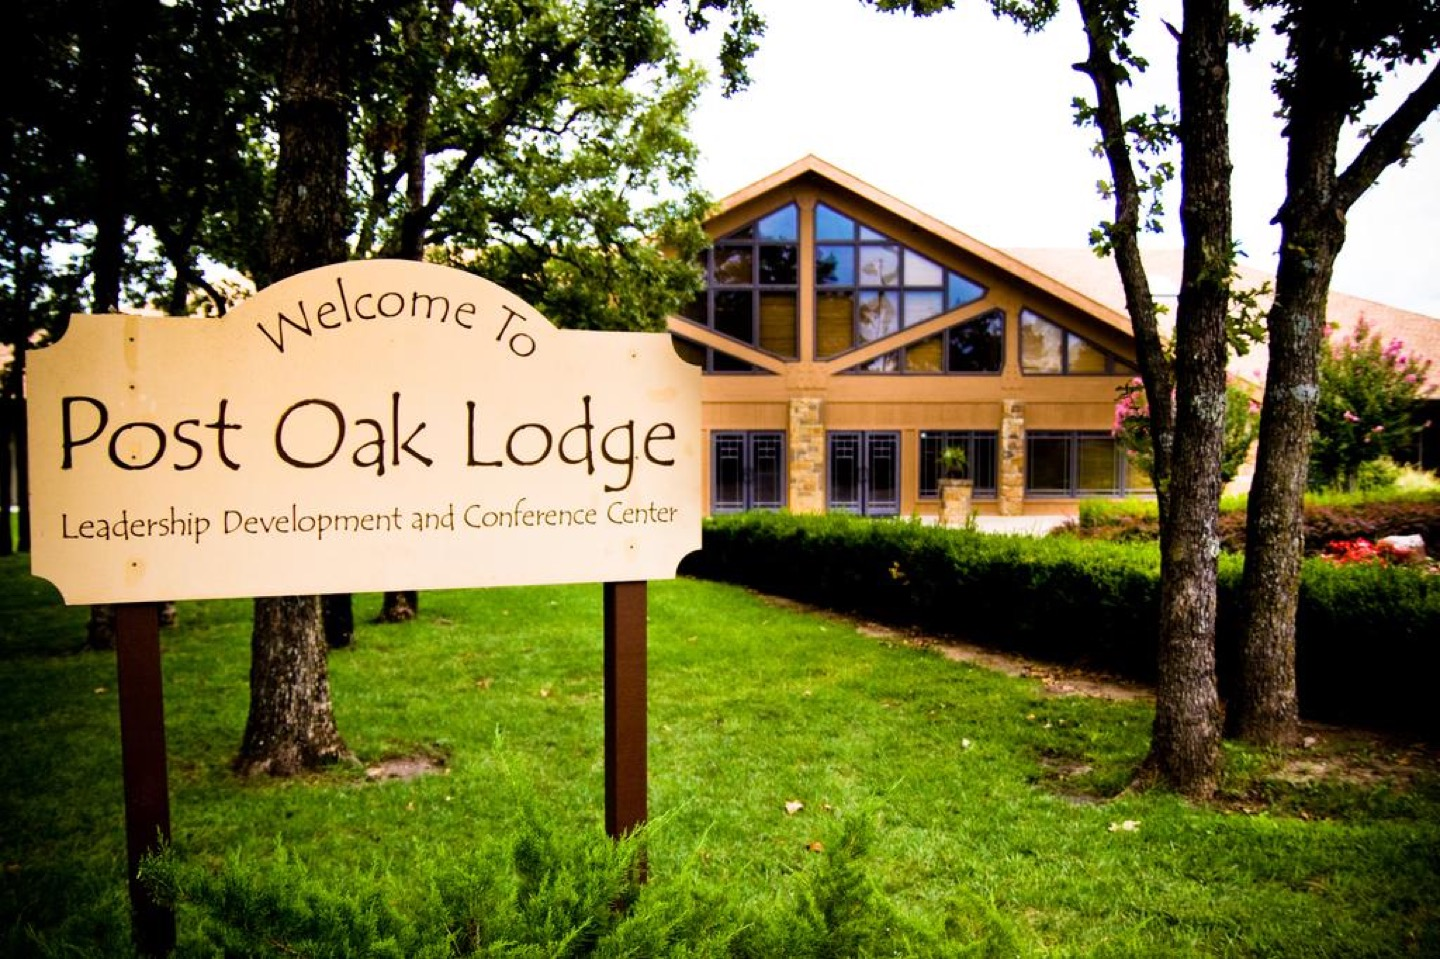 Post Oak Lodge